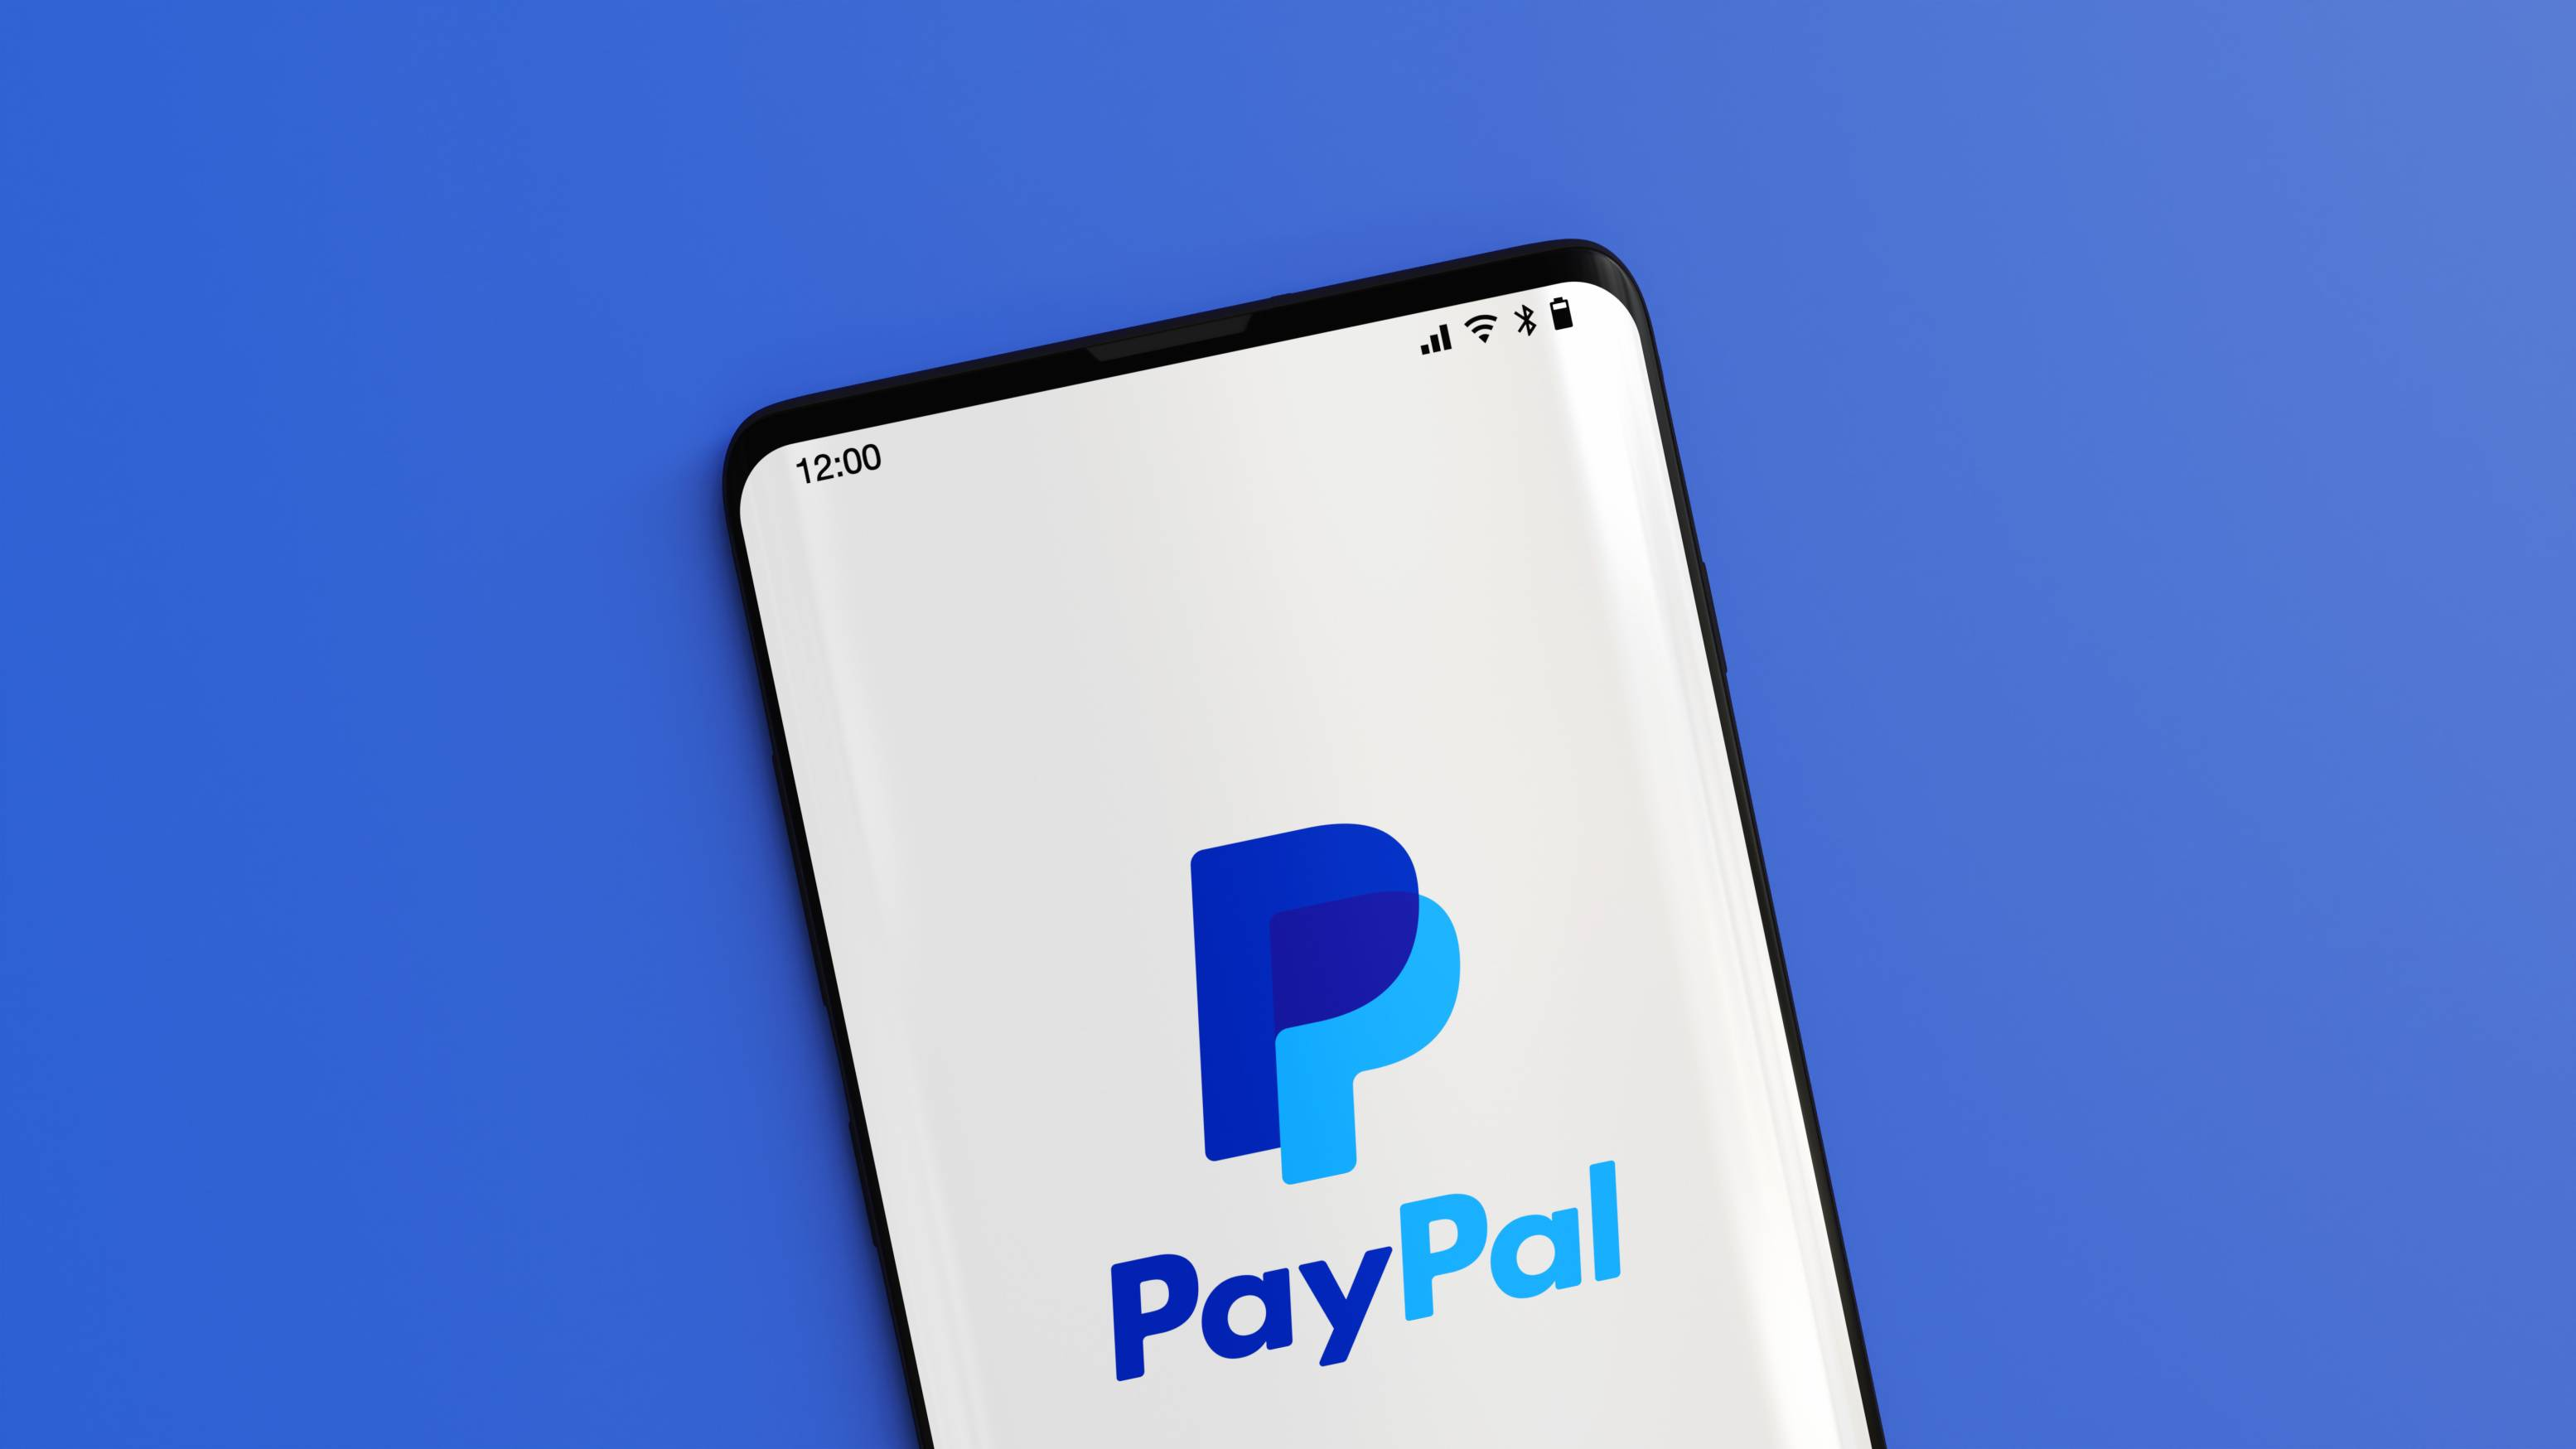 PayPal stock (NASDAQ:PYPL) upgraded by Barclays with a $343 target